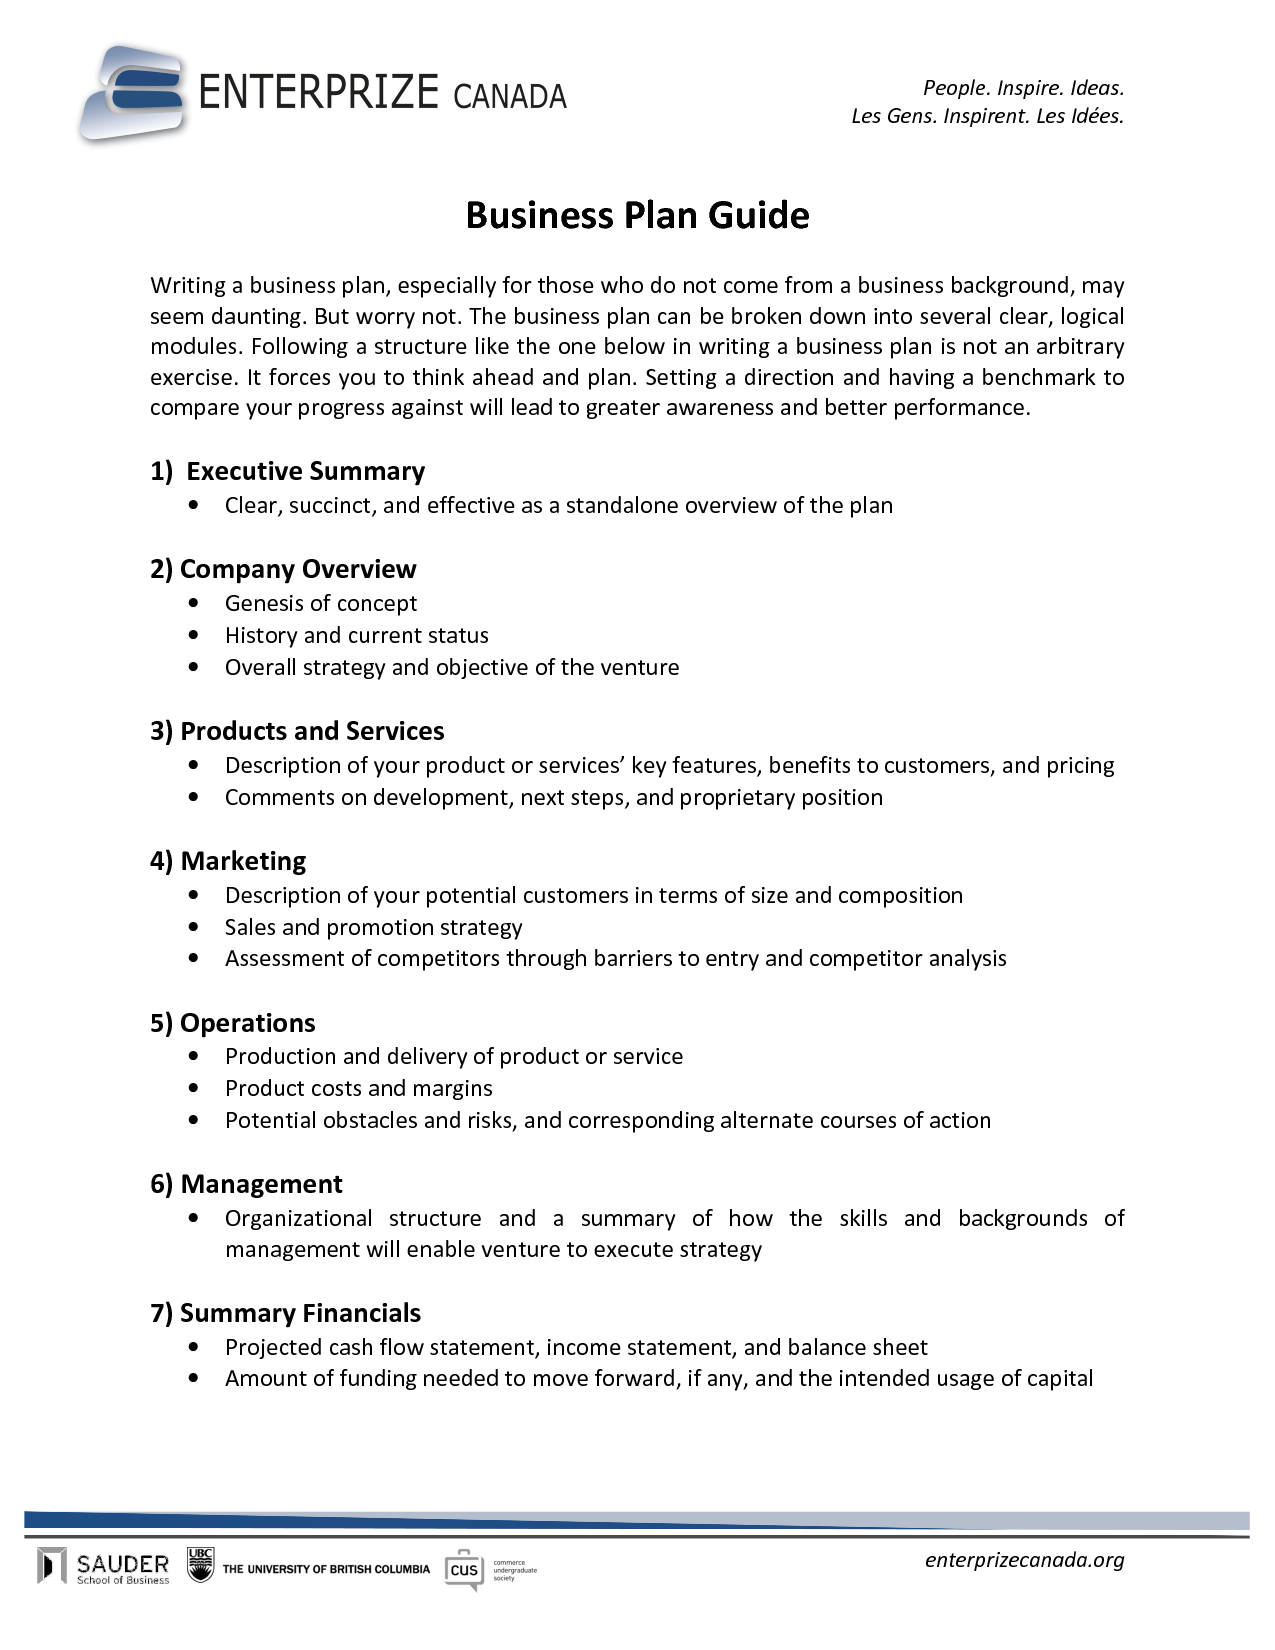 Sample business plan format selol ink sample business plan format friedricerecipe Gallery